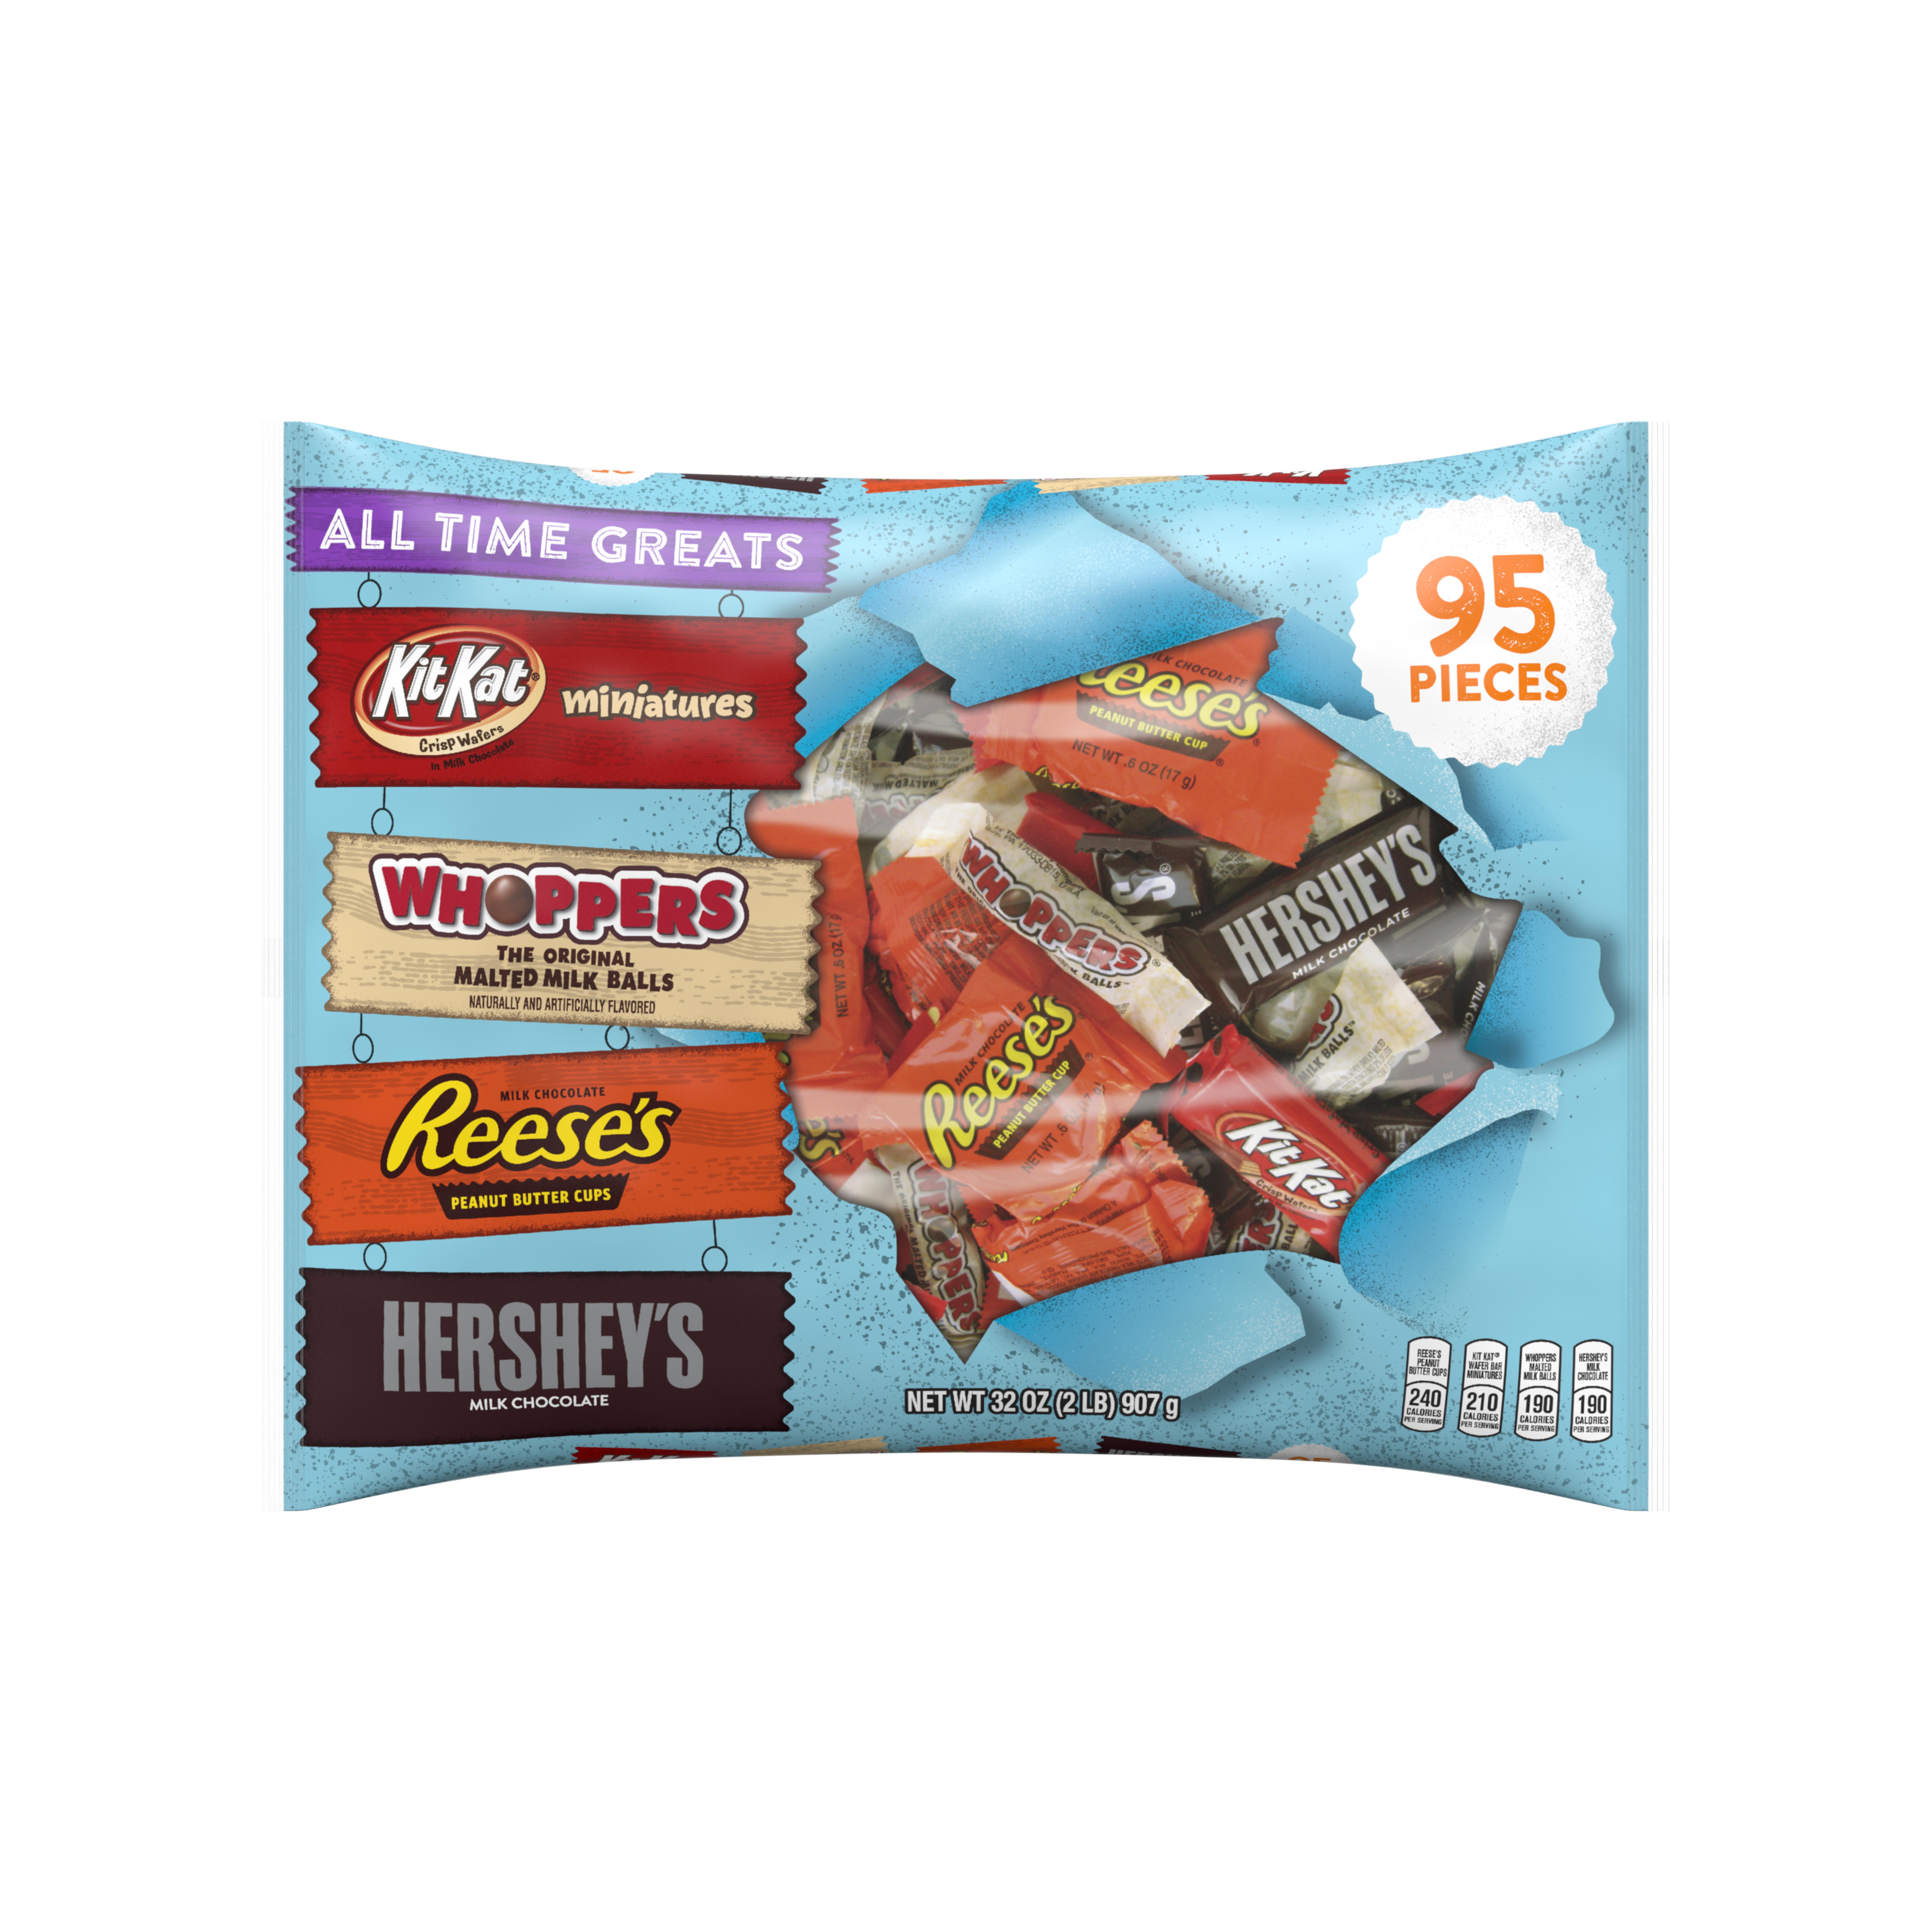 Hershey's Halloween All Time Greats Snack Size Hershey Assortment, 95 count